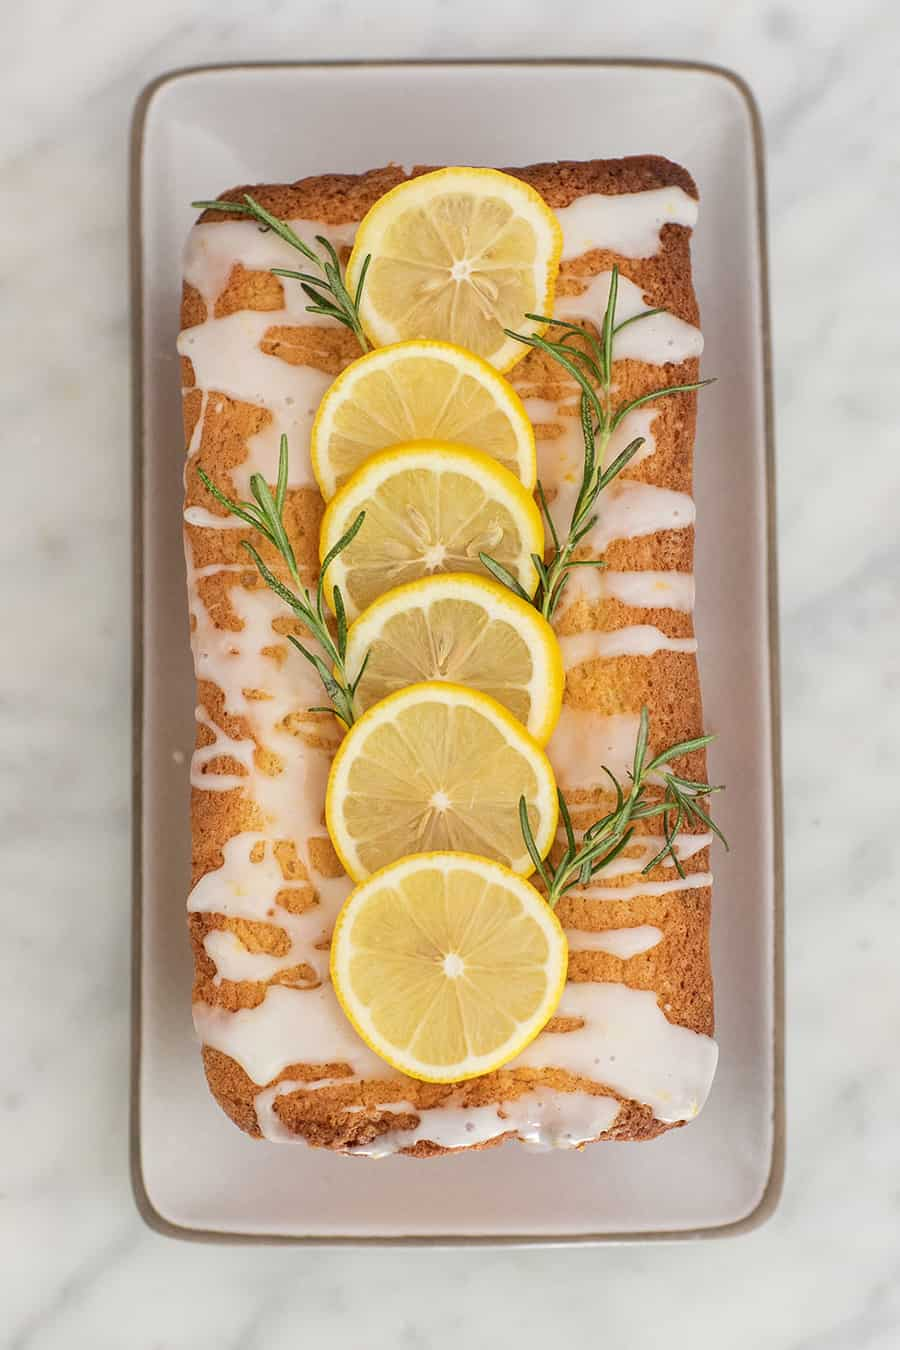 Lemon loaf cake with lemon slices and rosemary.